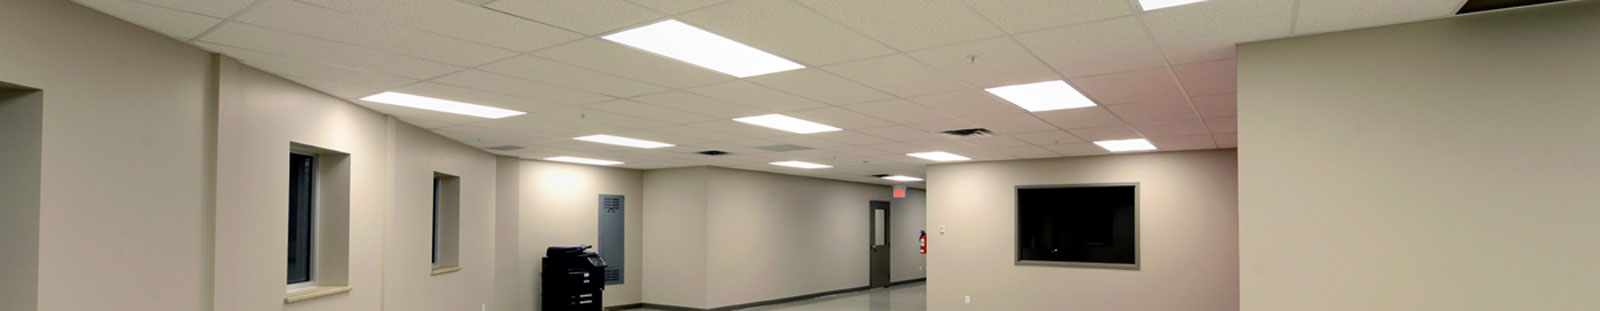 erb-transport-led-office-lighting